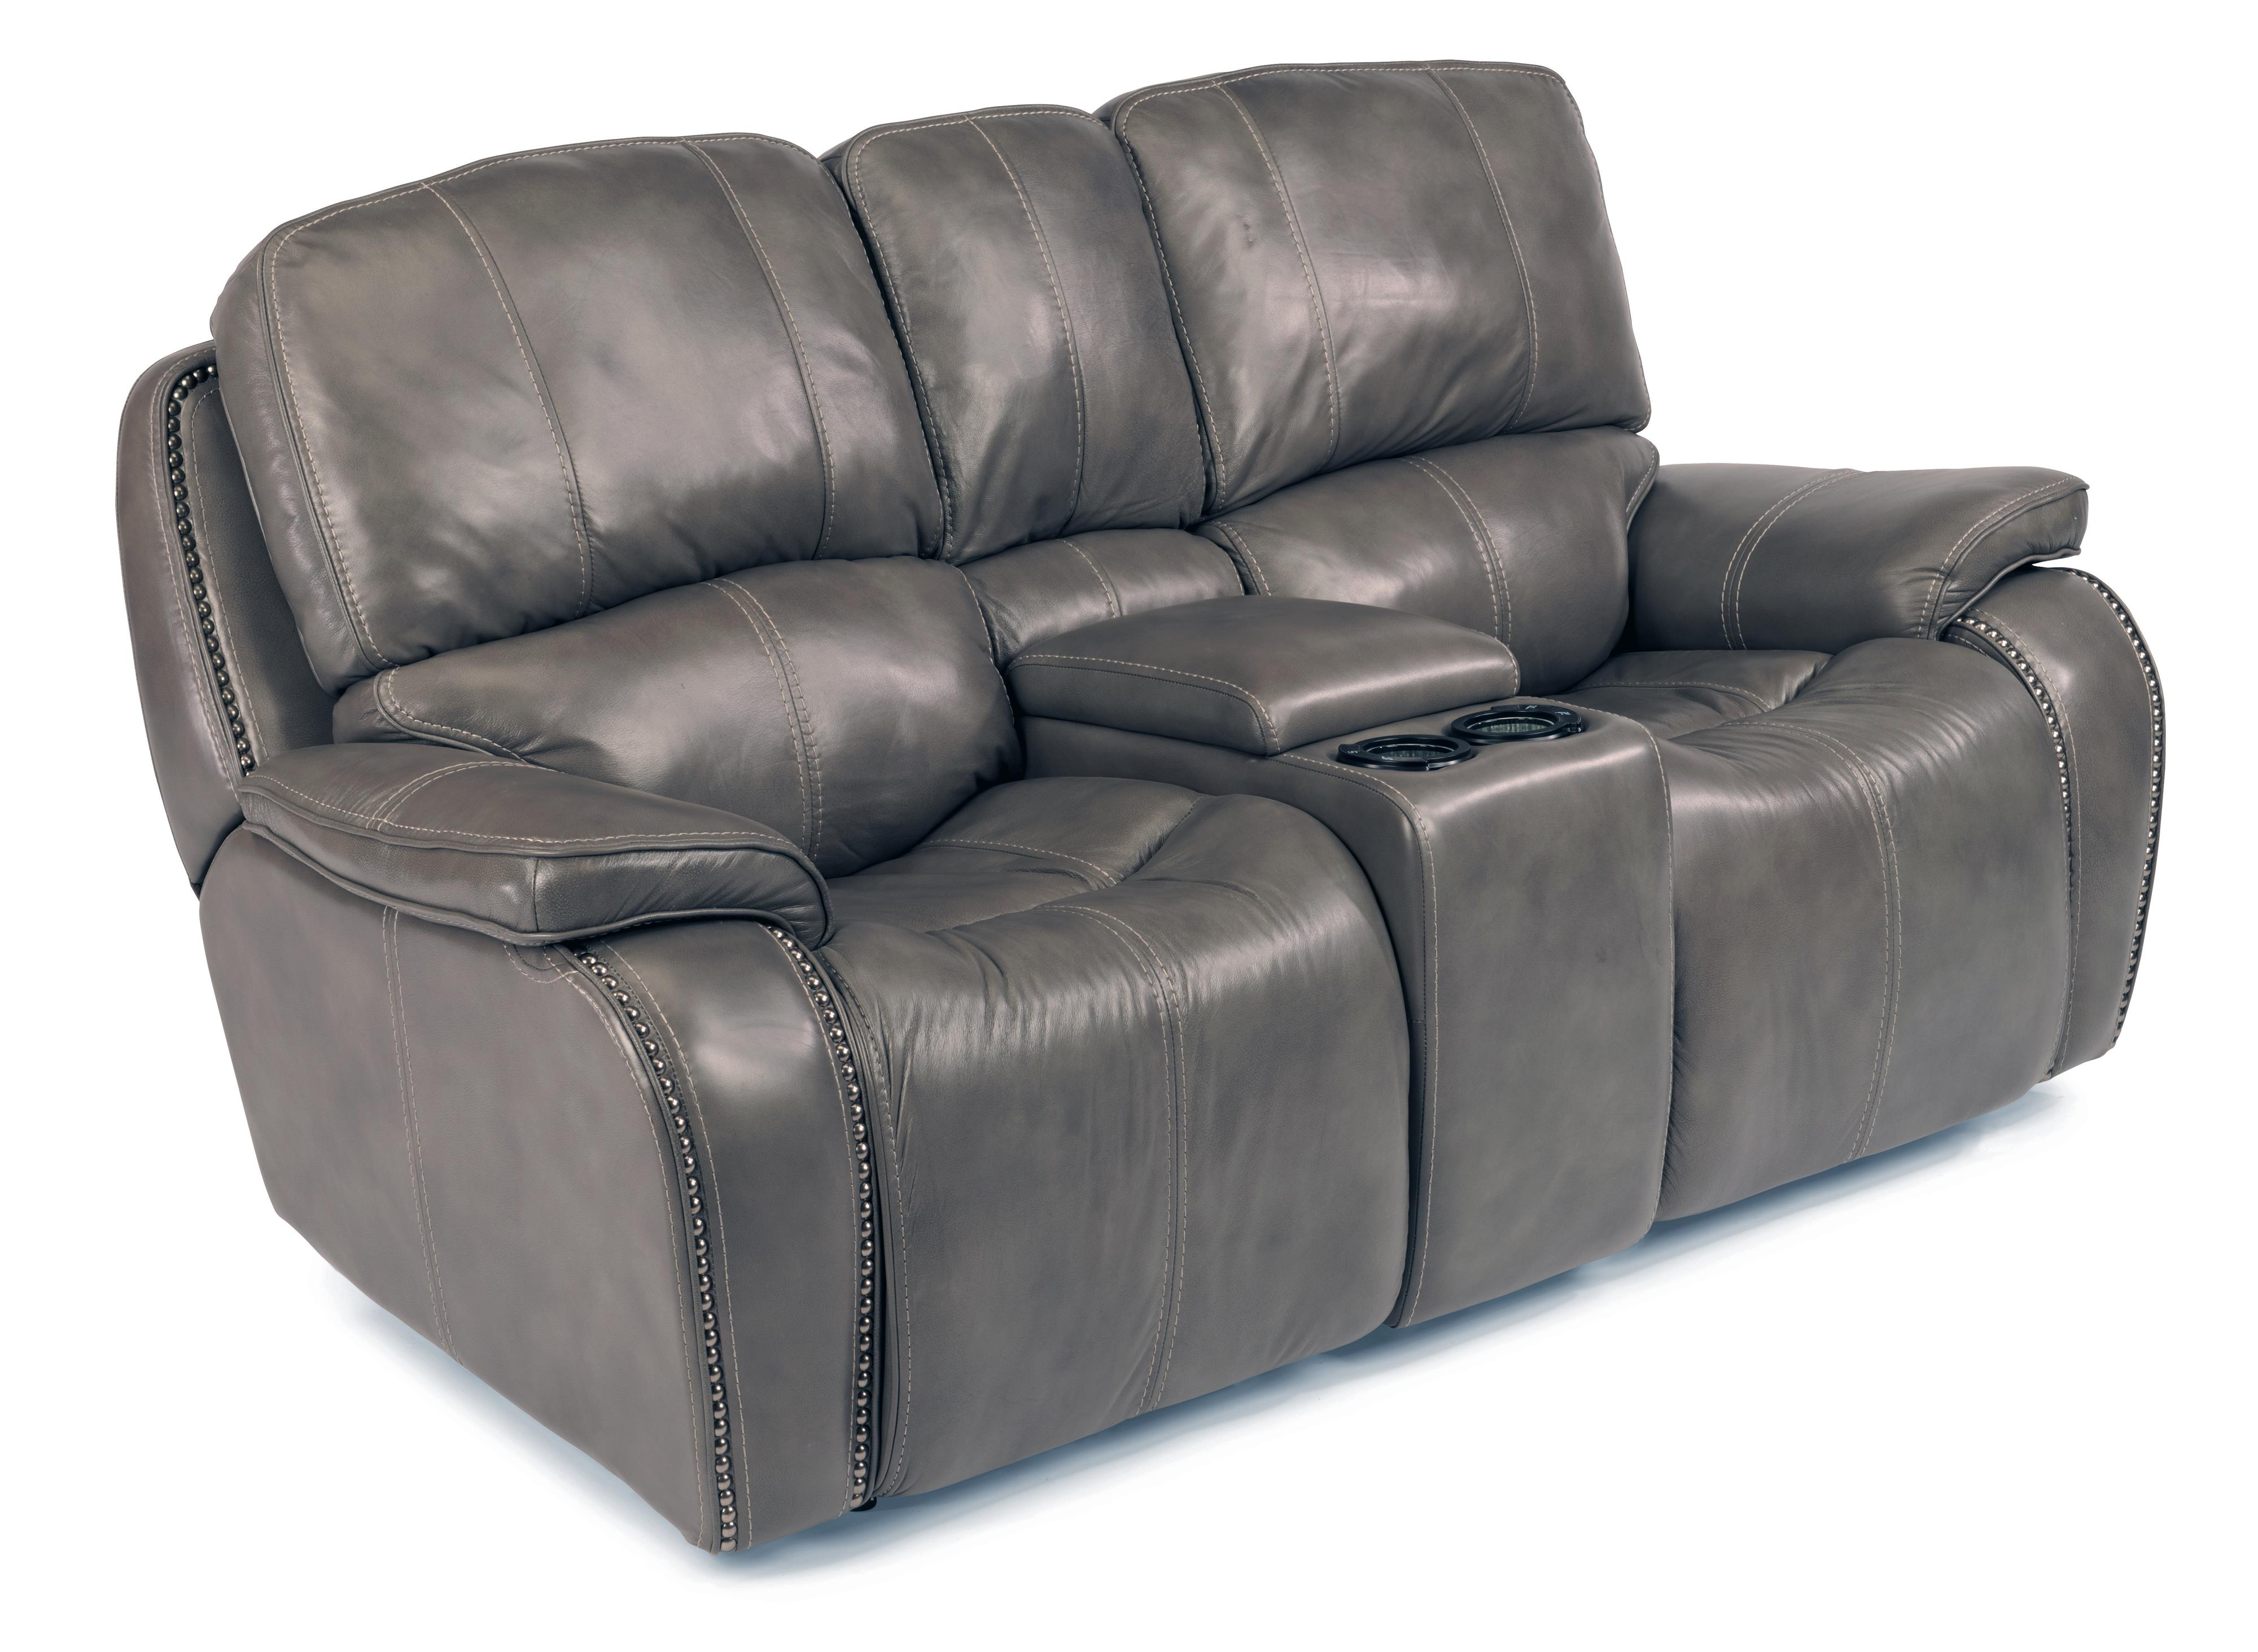 Flexsteel latitudes mackay power reclining loveseat with for Outdoor furniture mackay